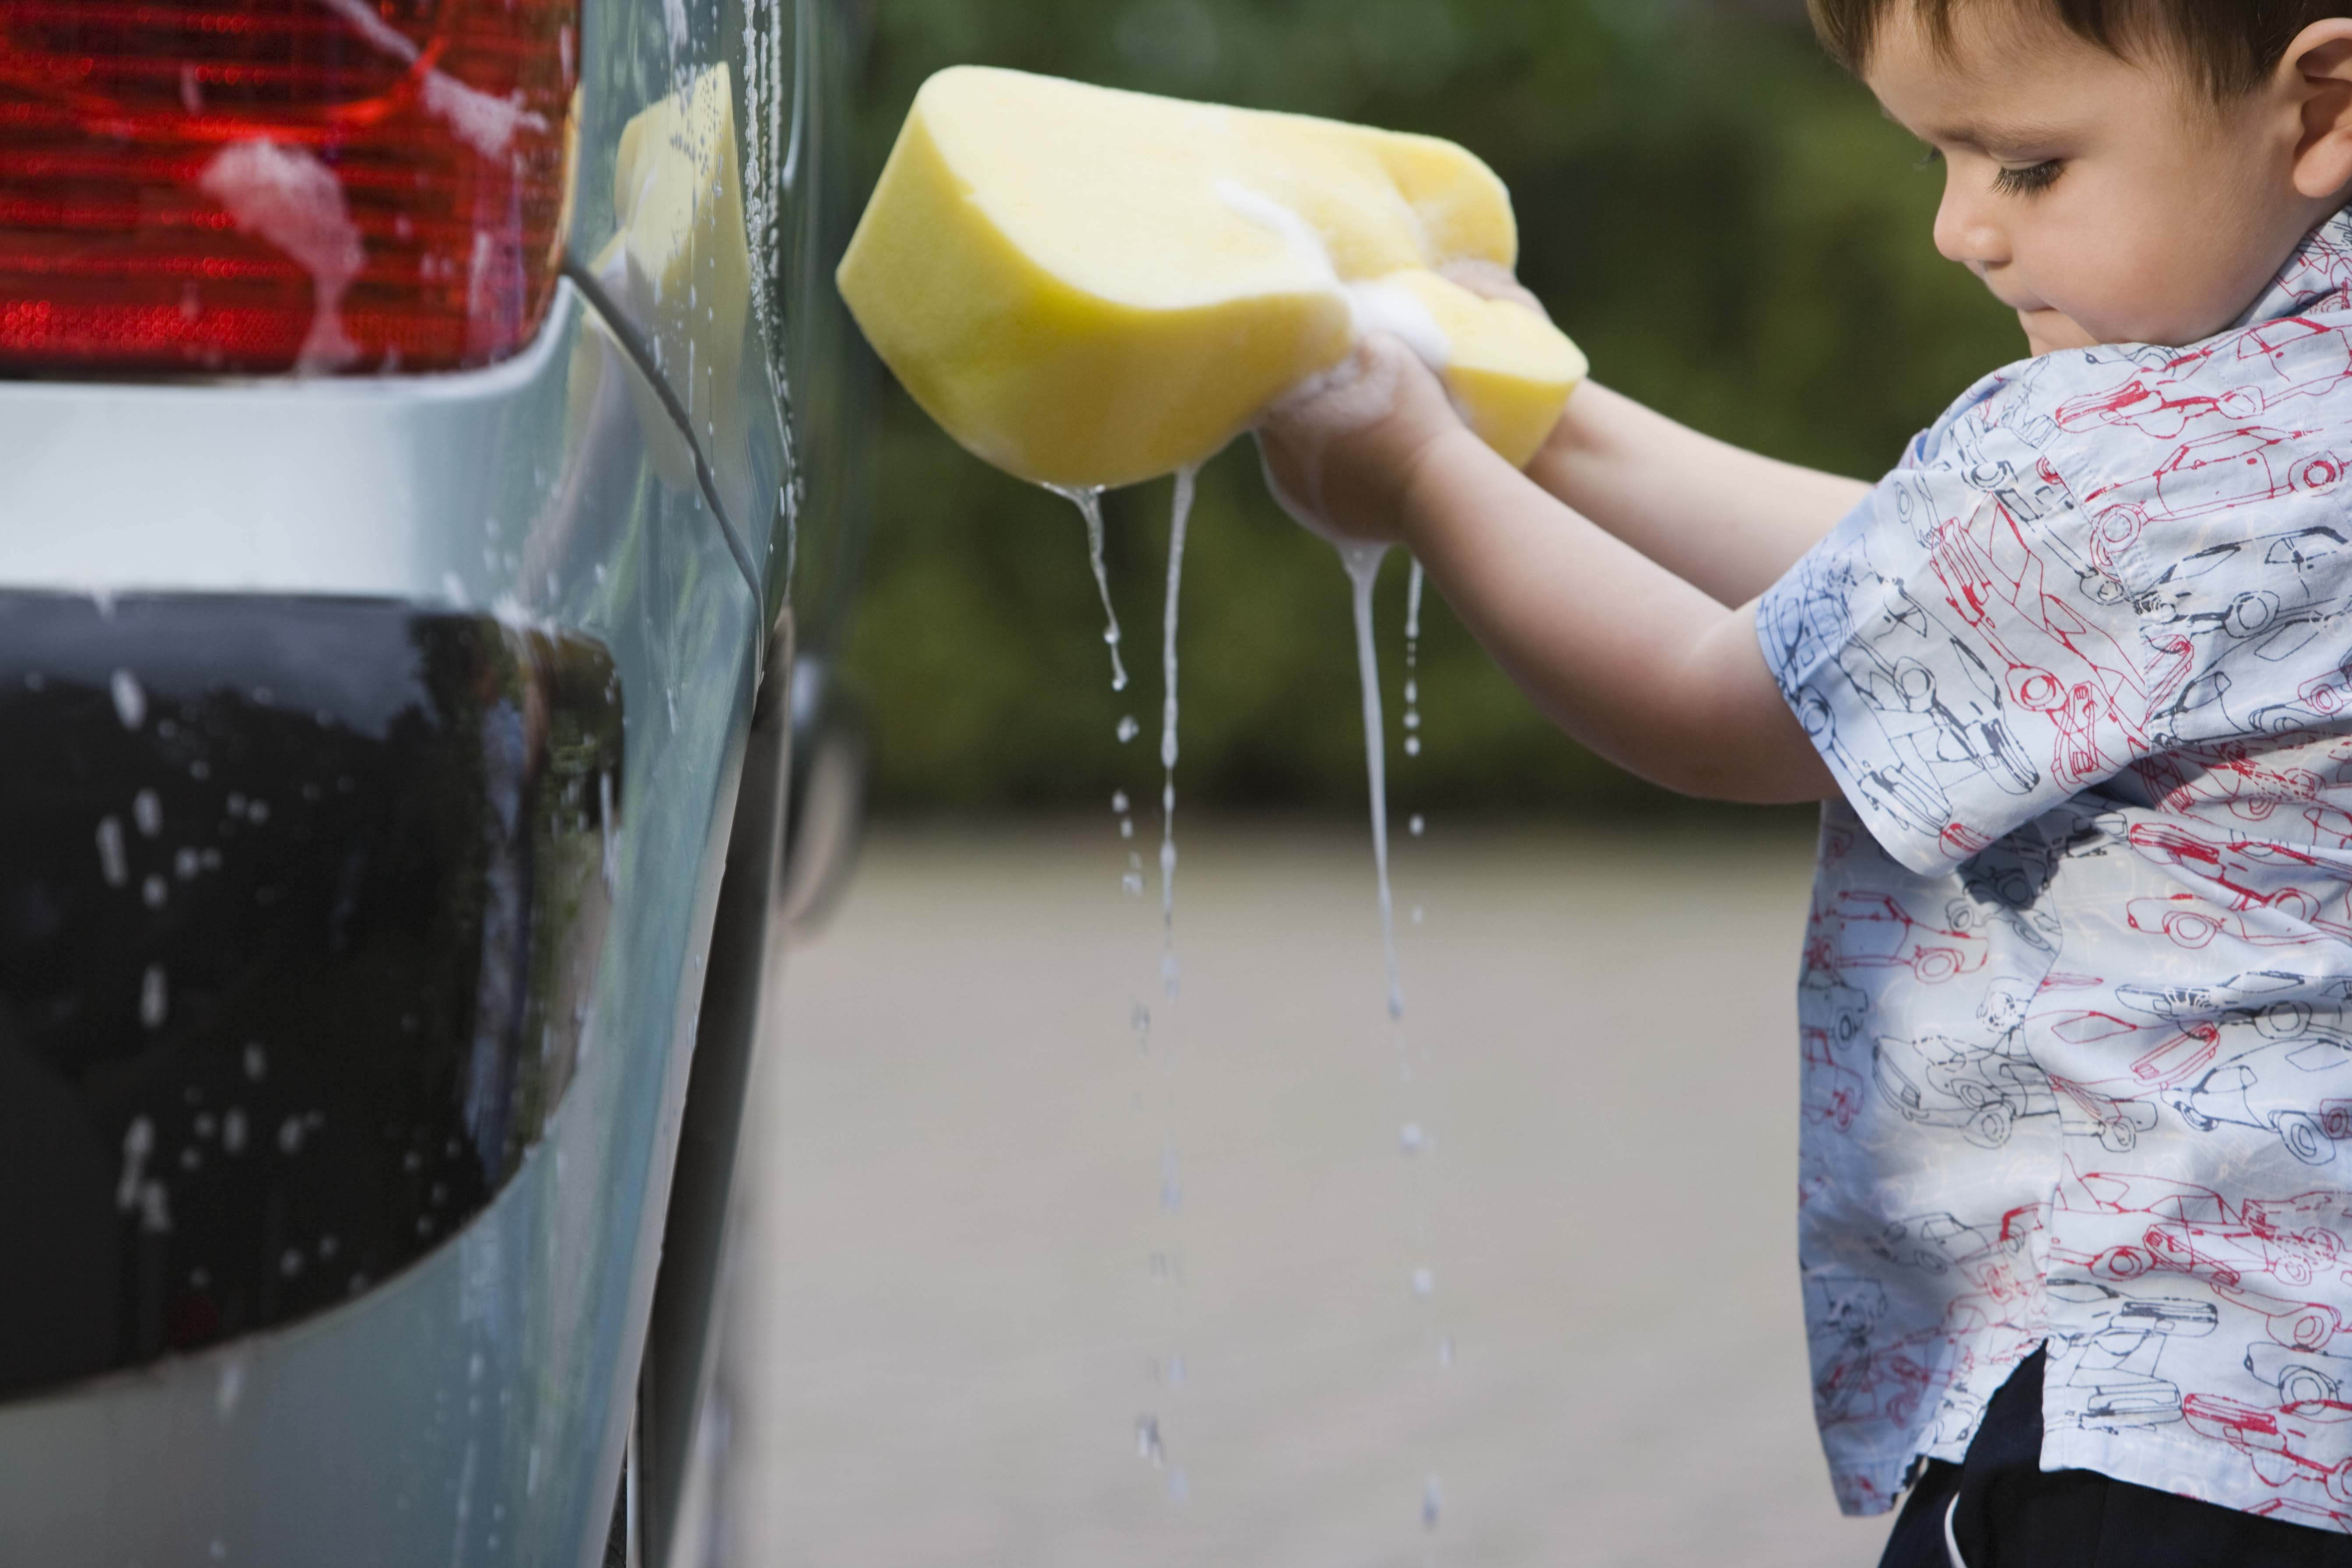 A young boy cleaning a car with a foam sponge